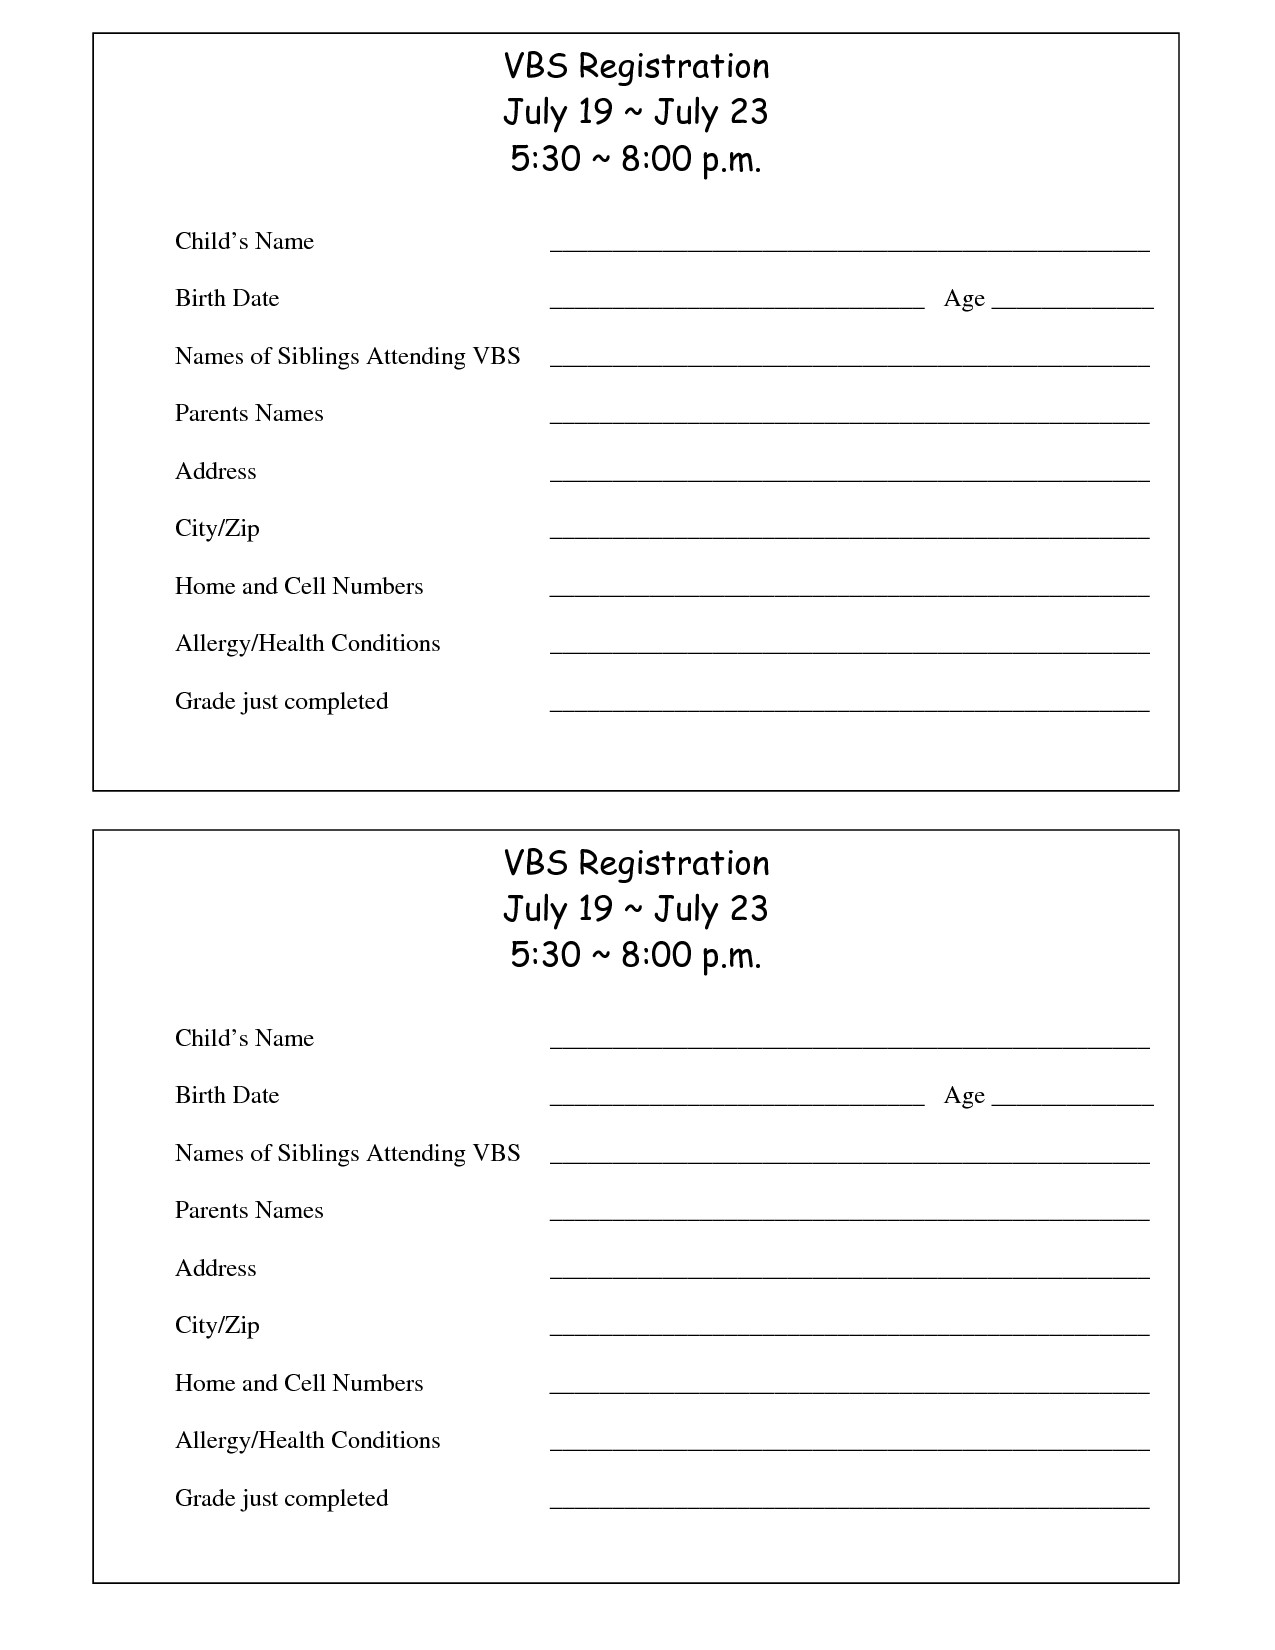 Registration form Template Free Download Printable Vbs Registration form Template